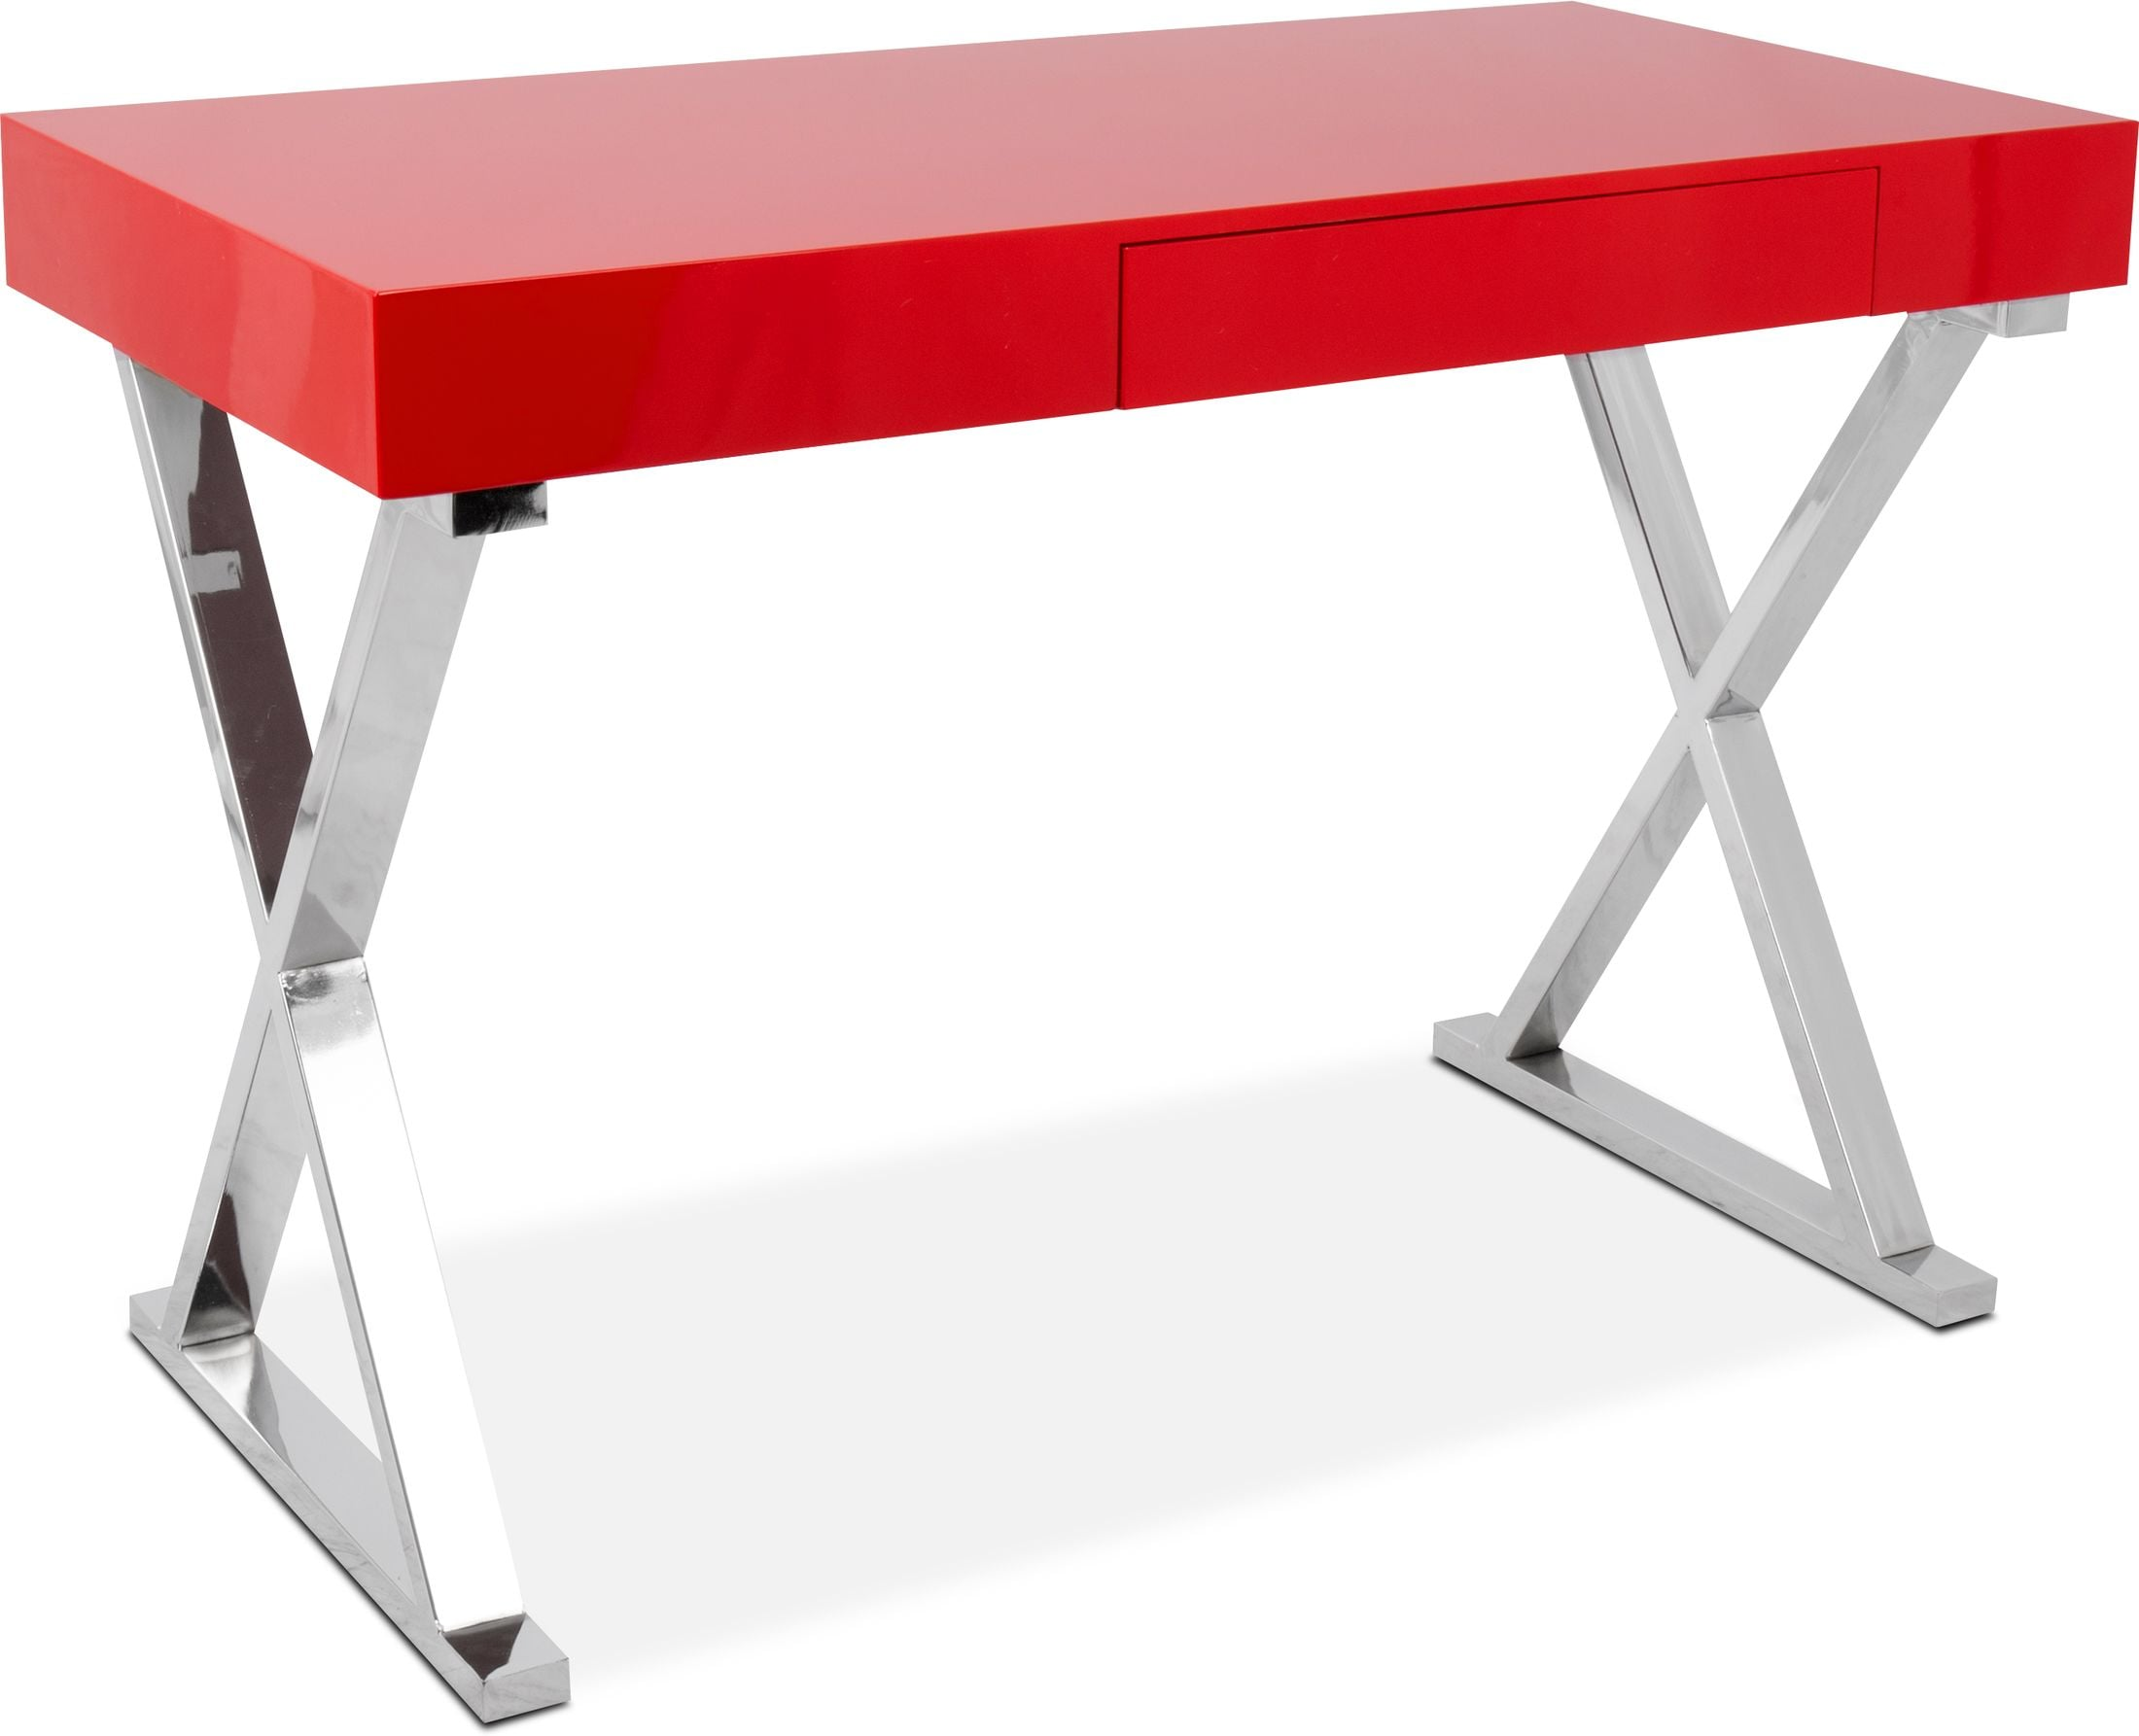 Home Office Furniture - Brixton Desk